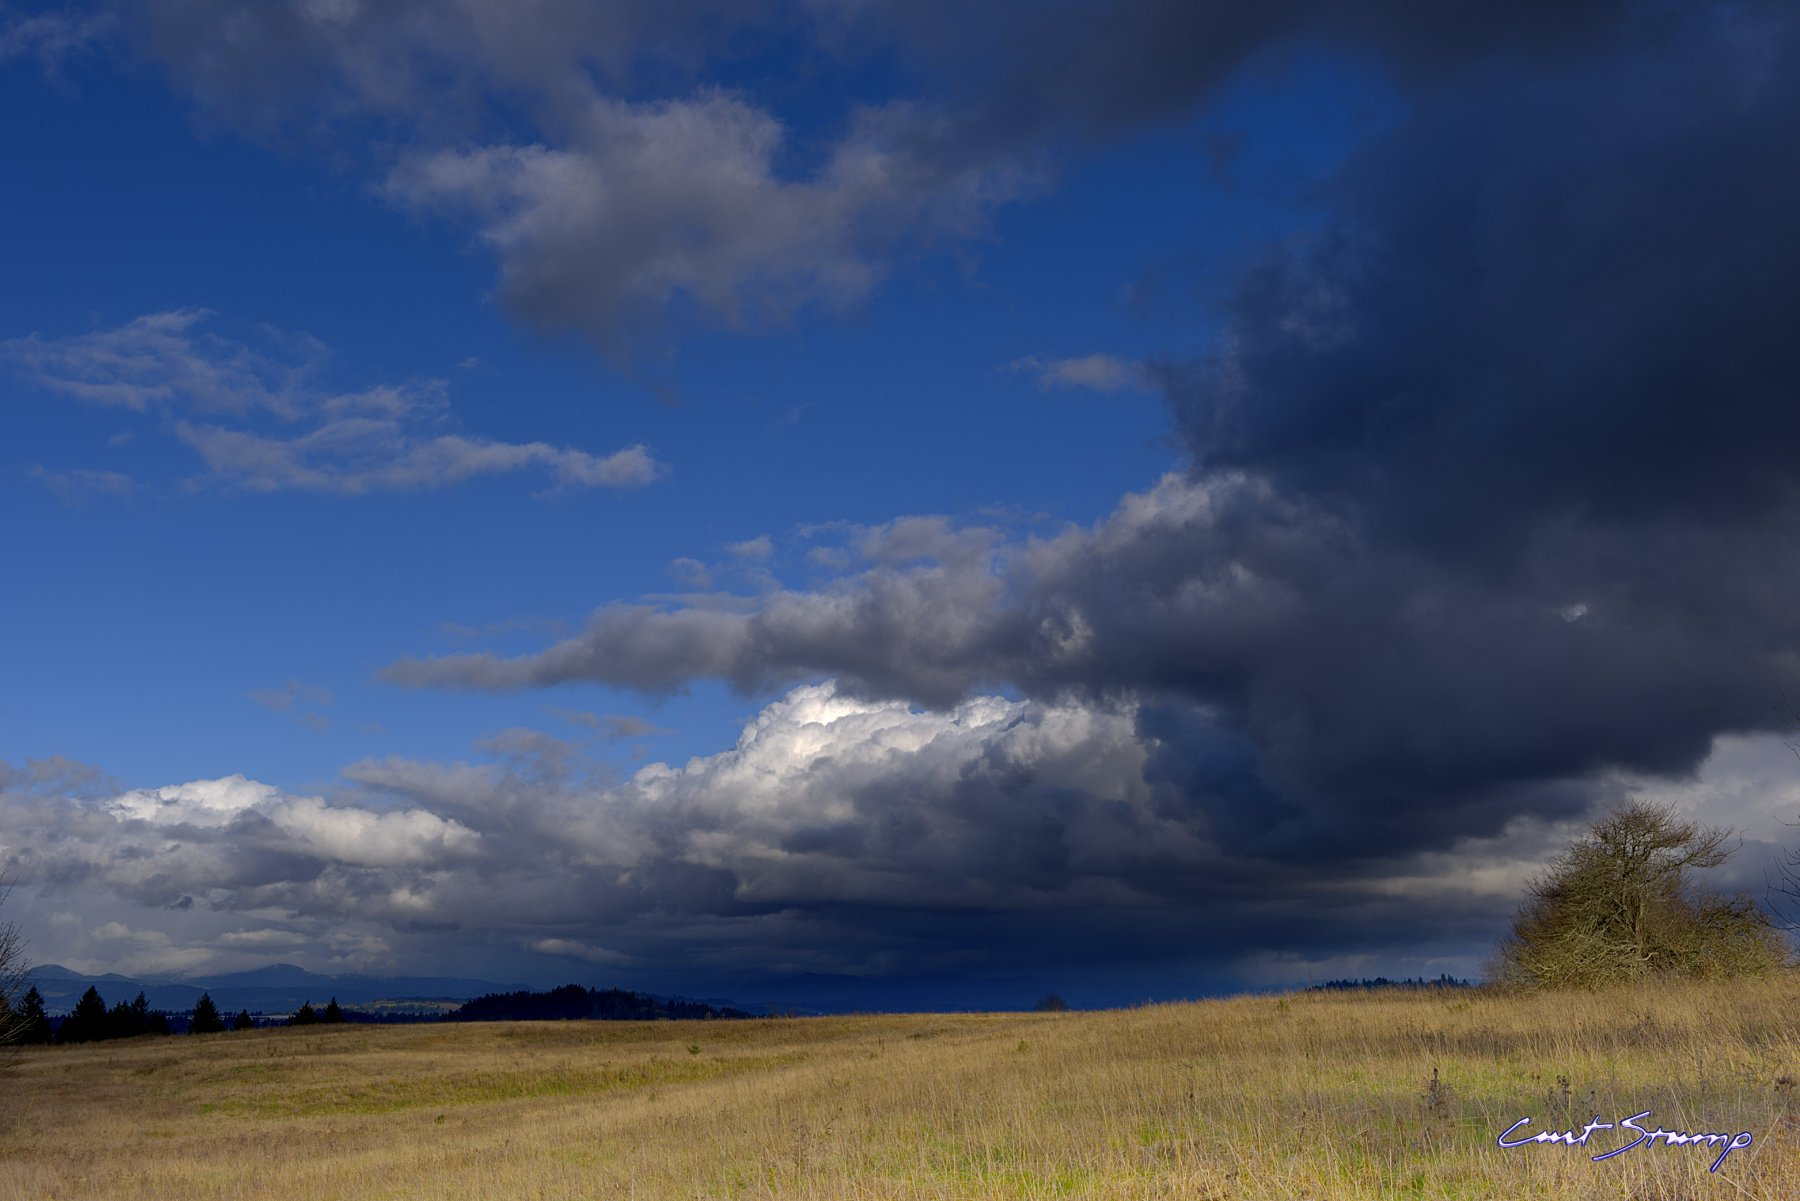 An open field with blue sky and storm clouds as seen from Powell Butte, Portland, Oregon.